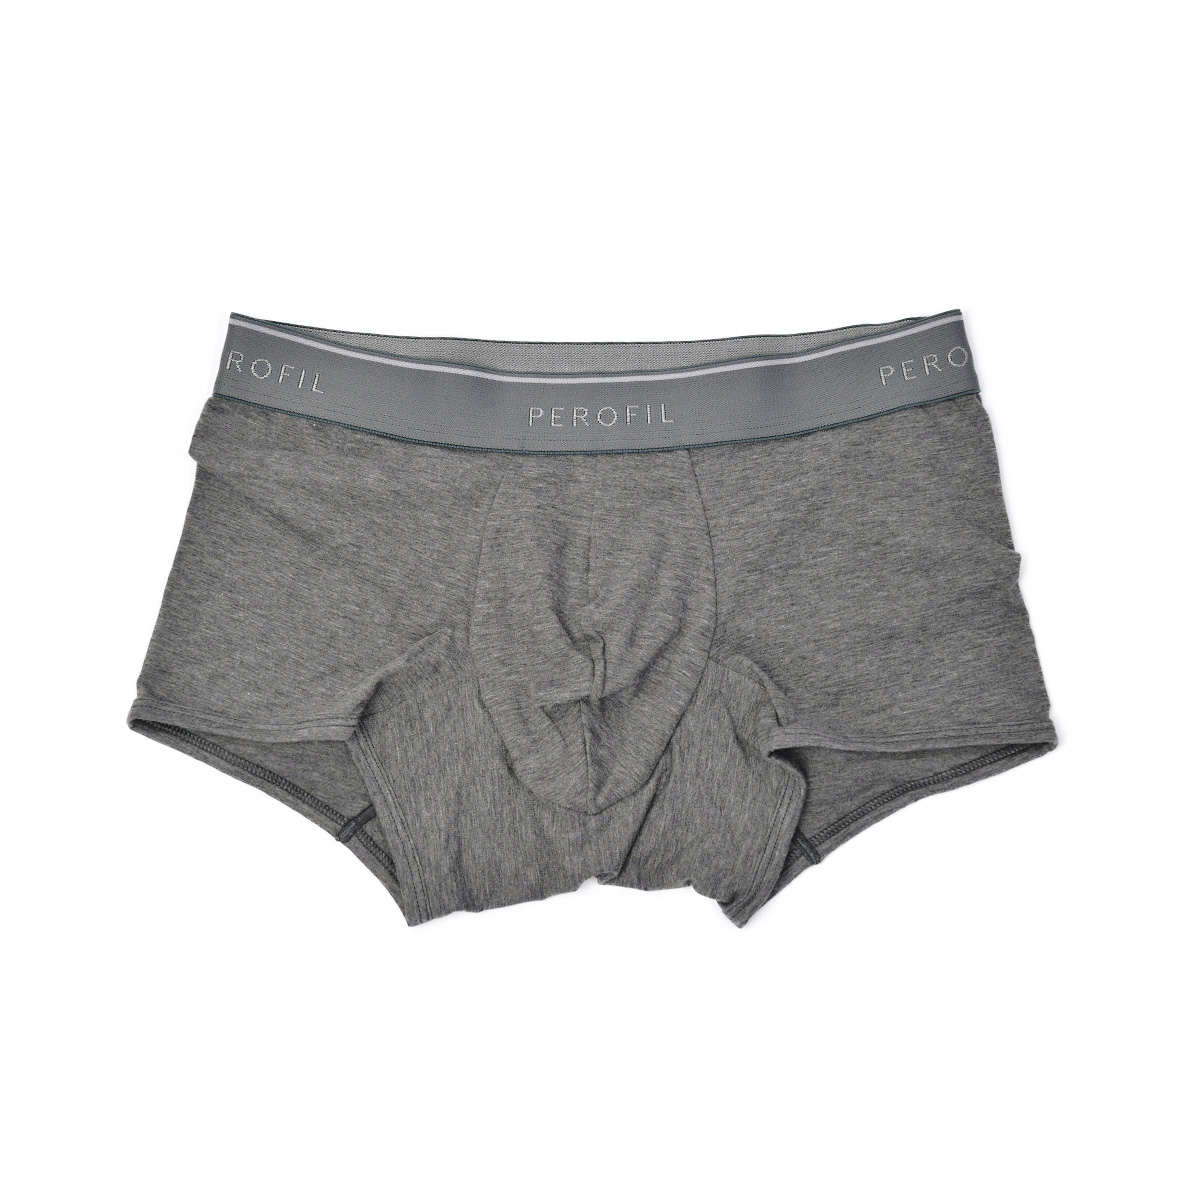 perofil【ペロフィル】アンダーウェア 下着 4SEASONS SHORT PUSH-UP BOXER TRUNK GRIGIO MELANGE SCURO グレー